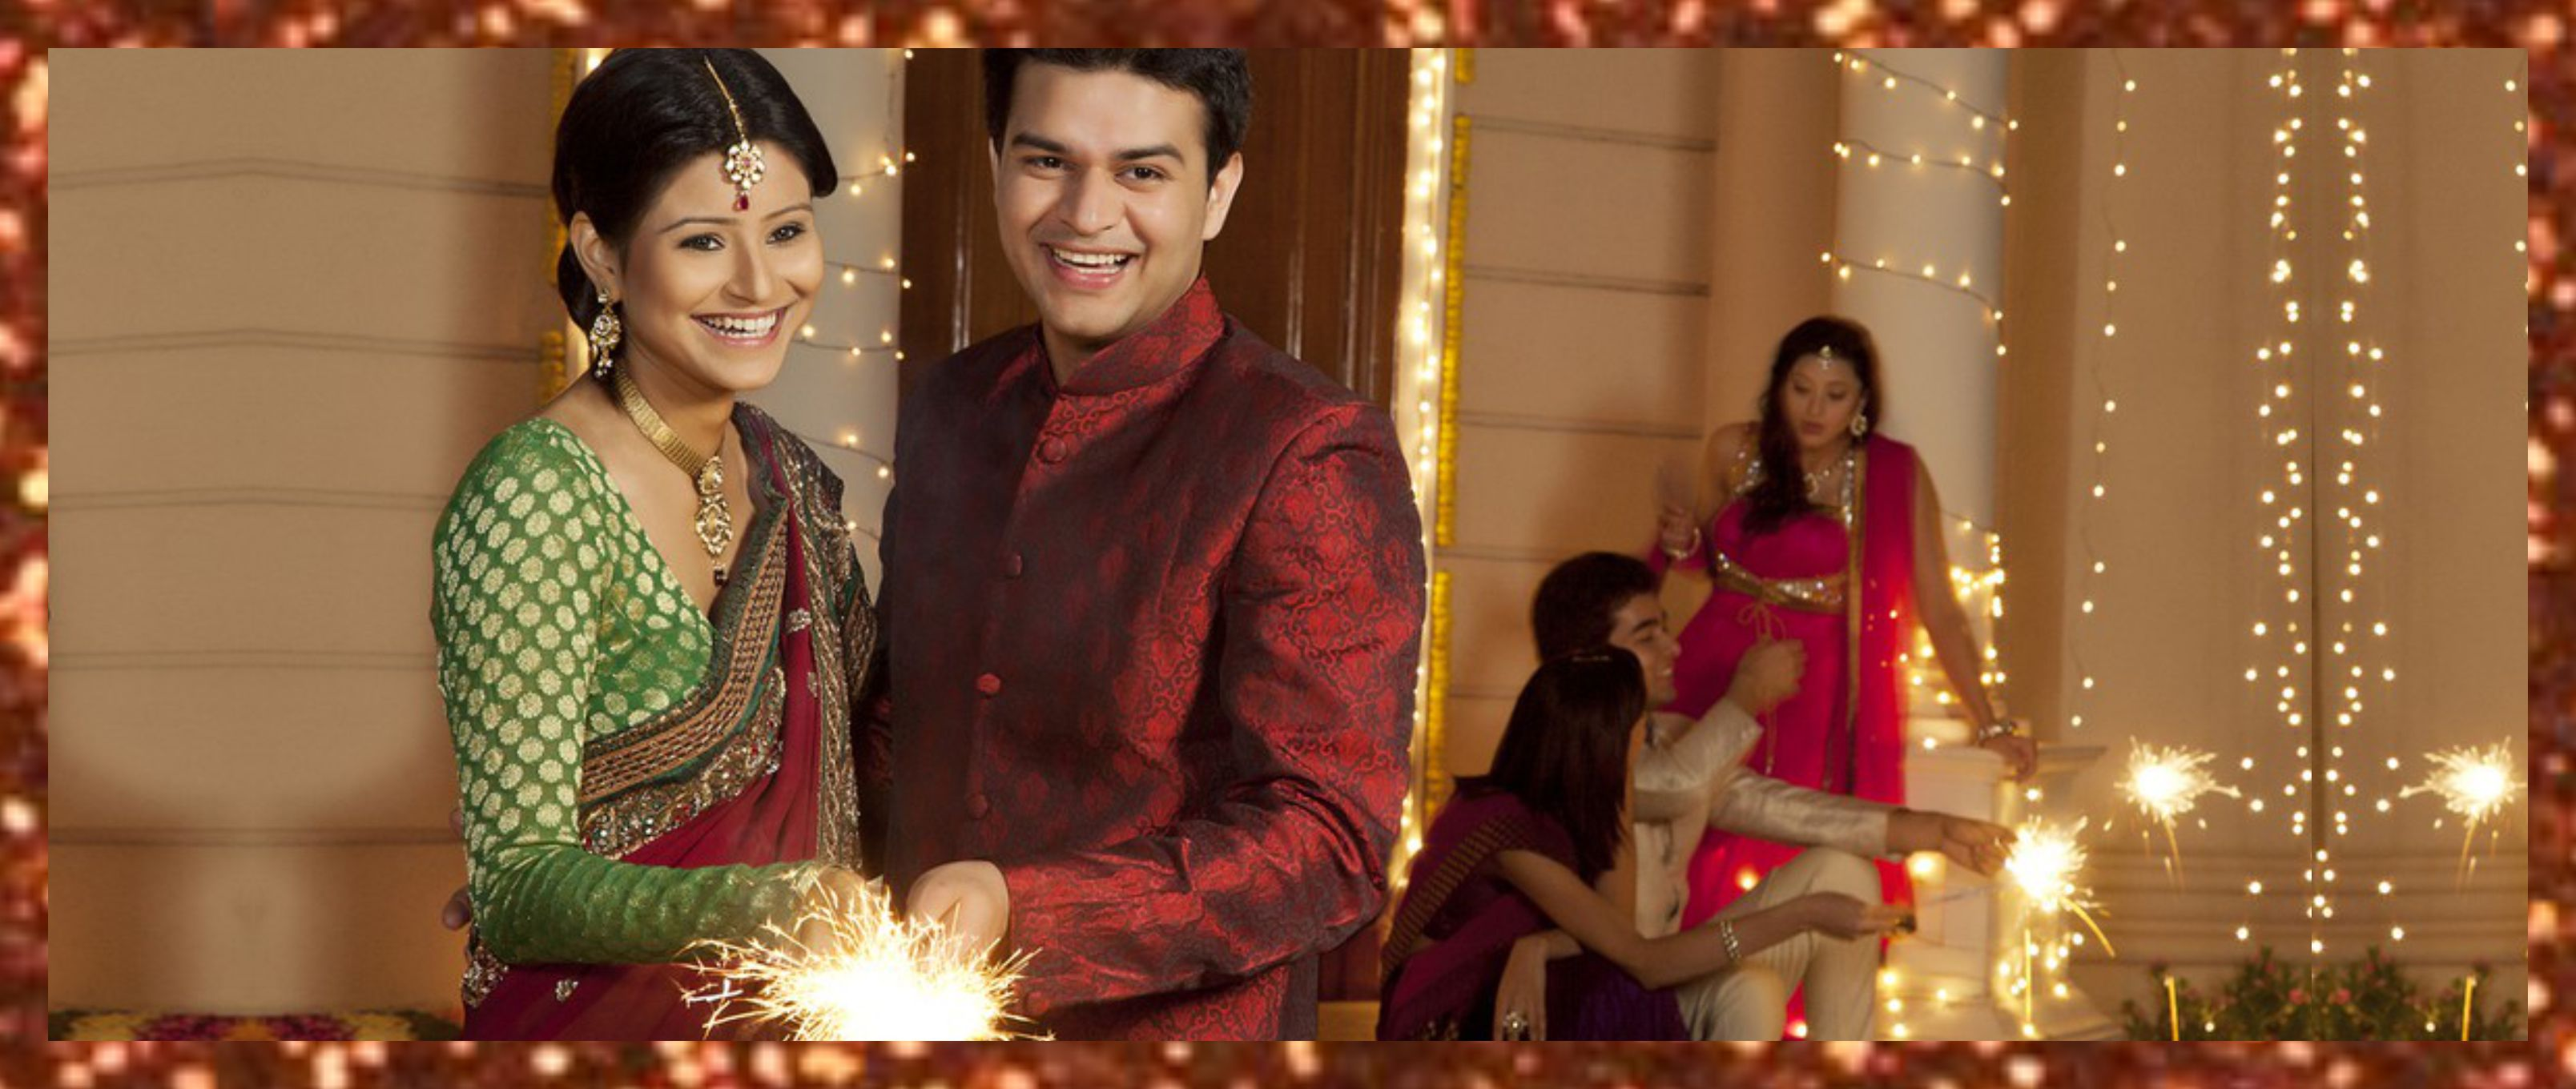 DIWALI: A FESTIVAL OF LIGHTS, TOGETHERNESS AND HAPPINESS